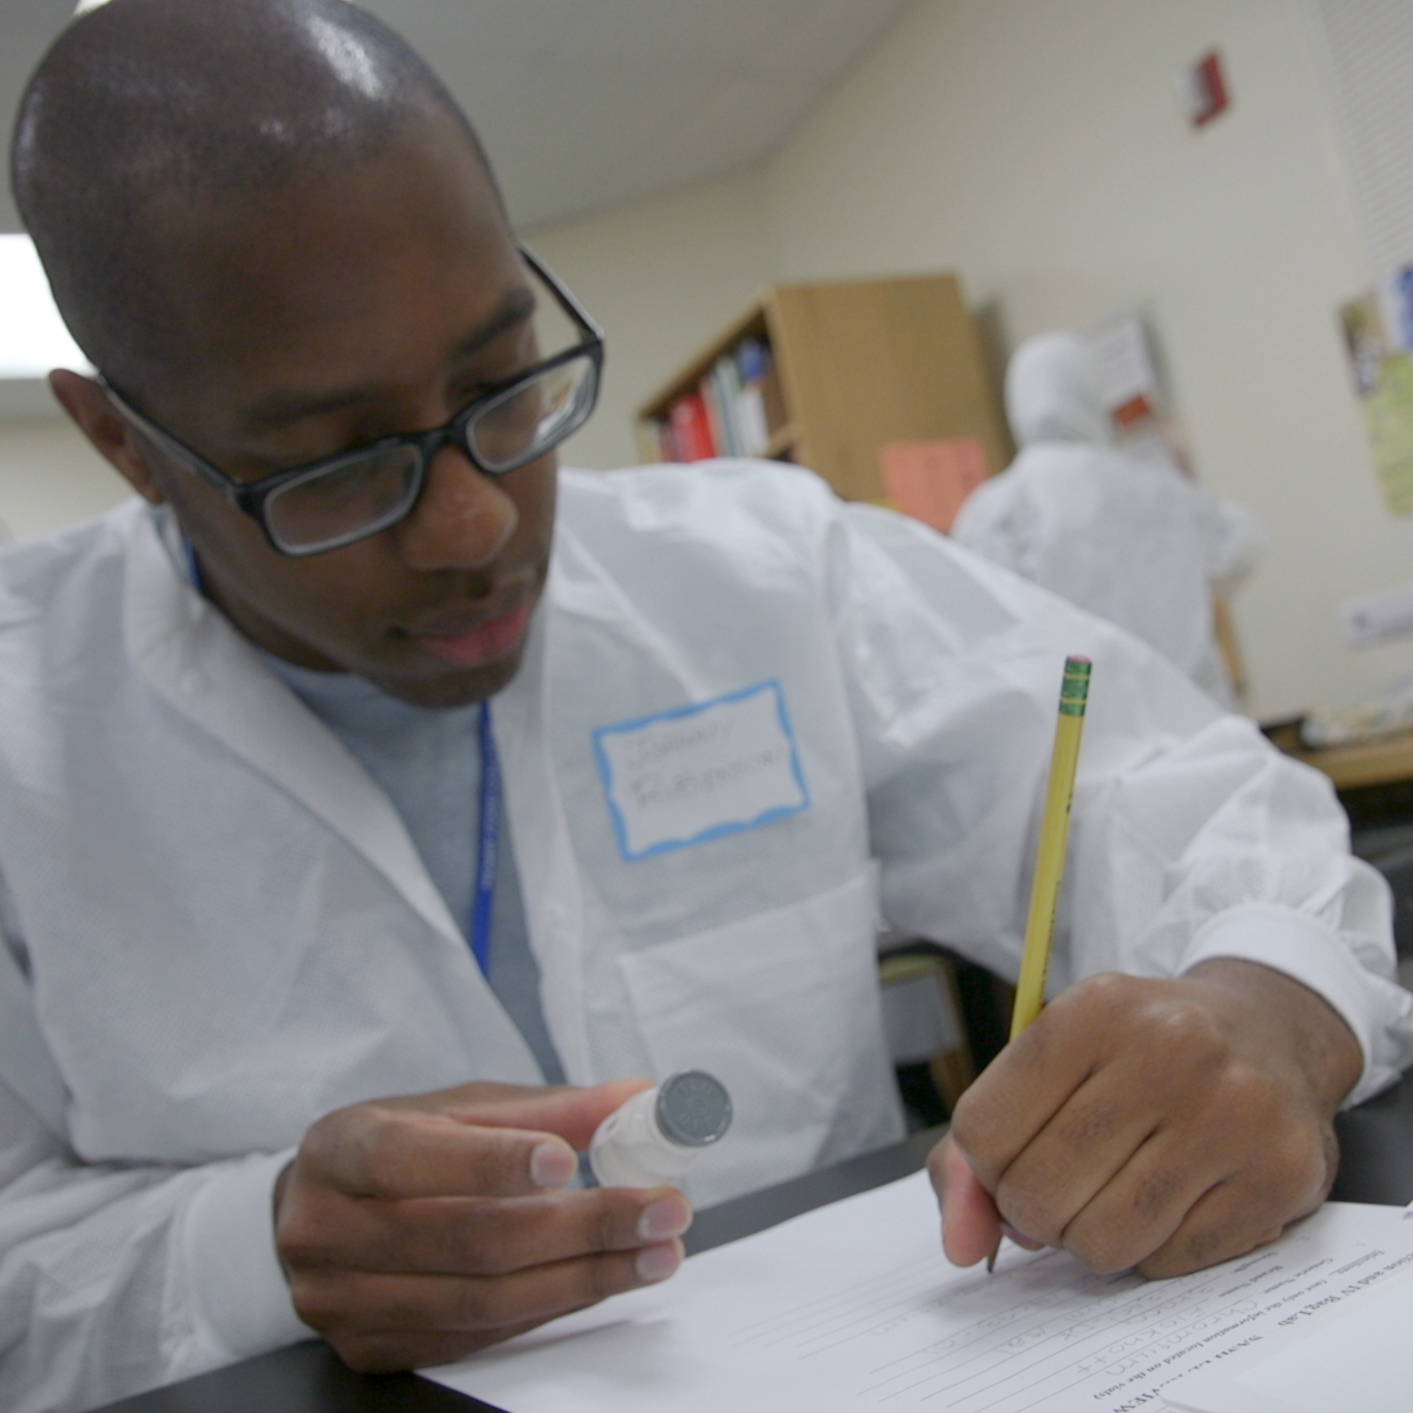 Student in white lab coat writes medication information while holding a vial.